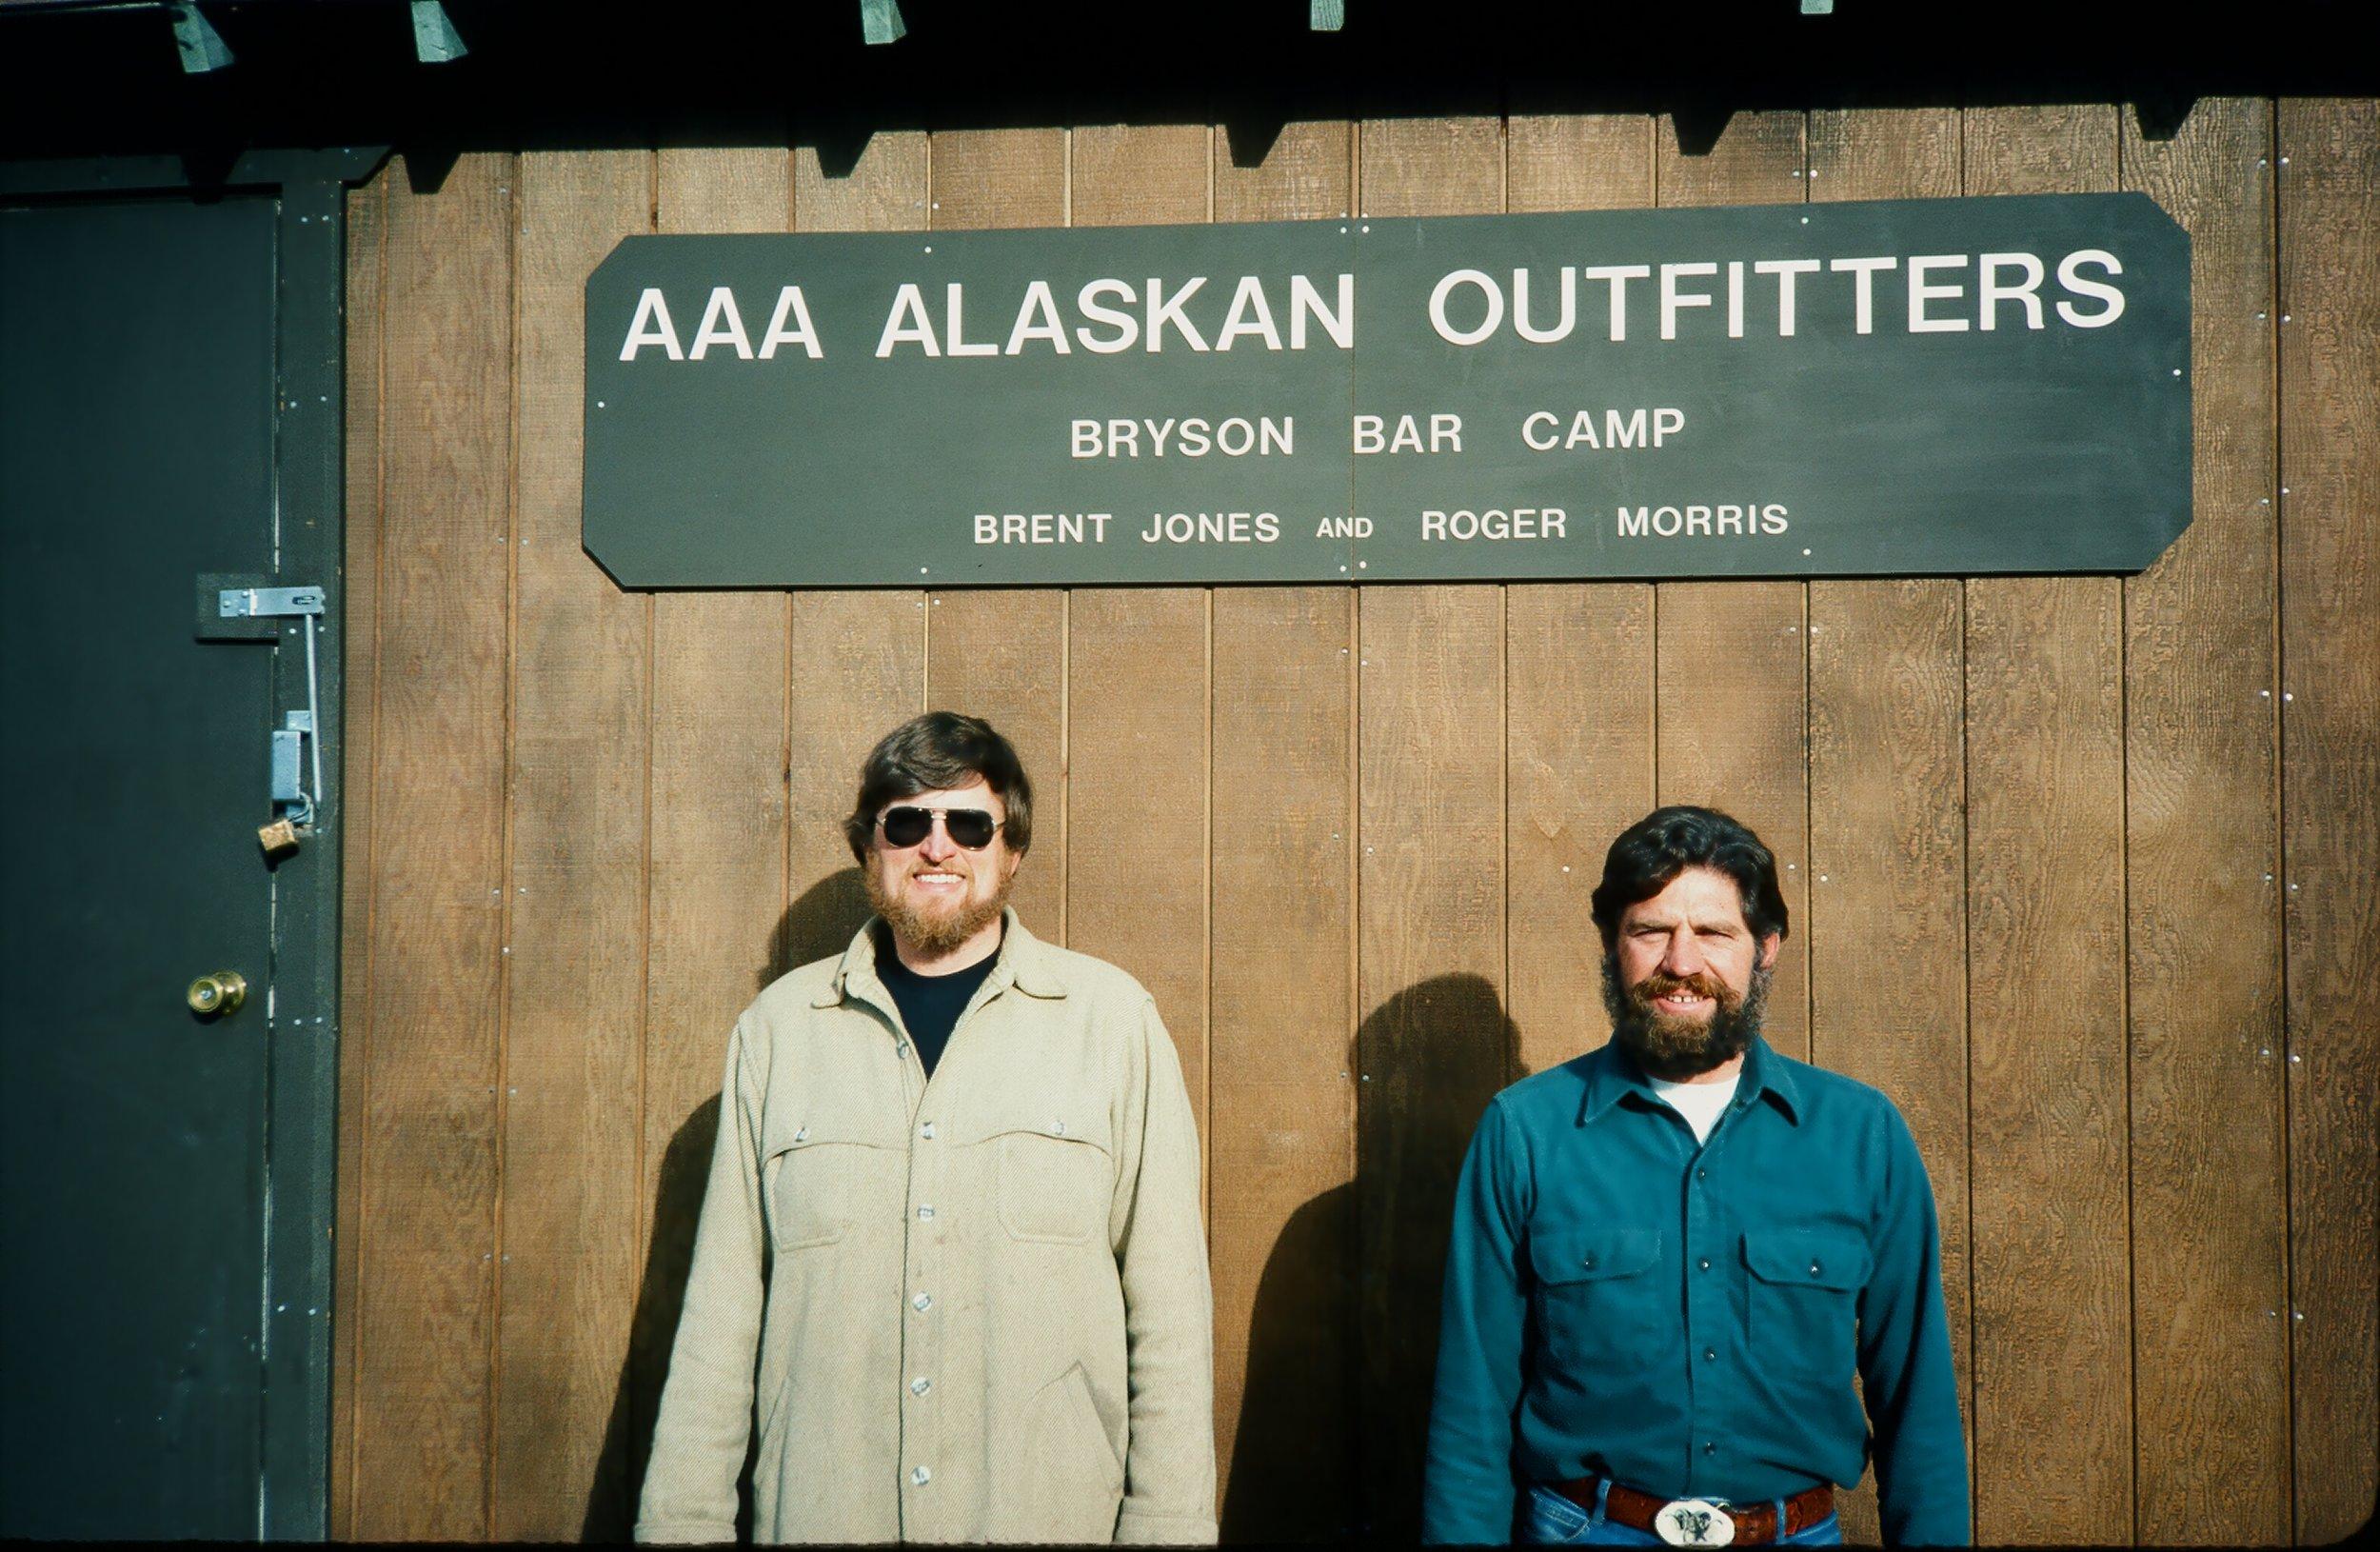 Brent and me in 1984 at our Bryson Bar base camp in the Wrangell's. Back in the day. I had just turned 40. We look like kids.